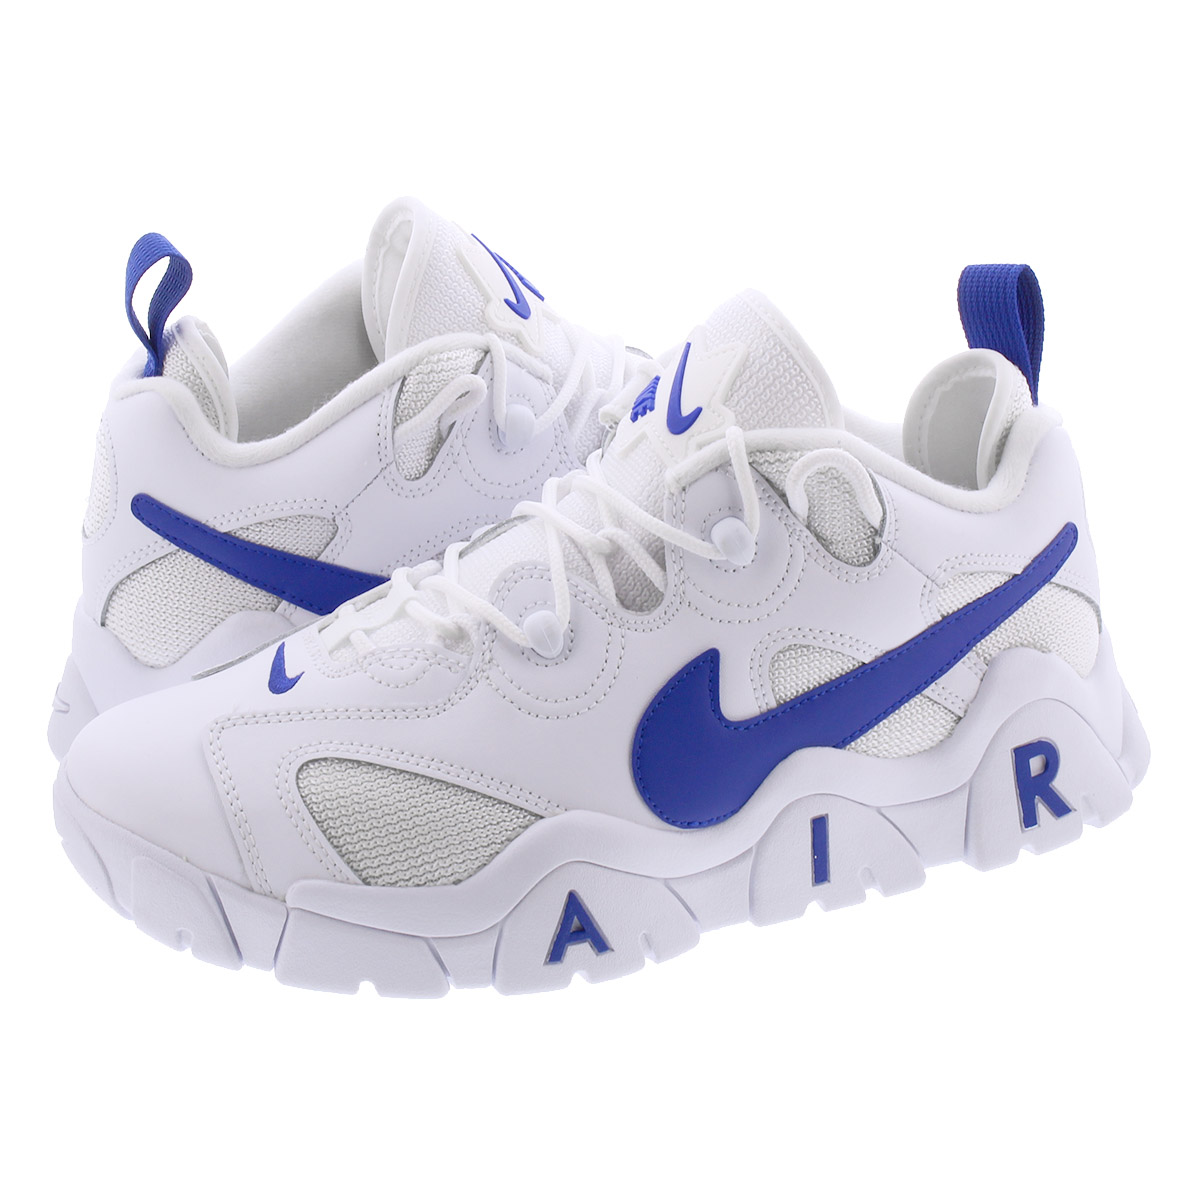 NIKE AIR BARRAGE LOW ナイキ エア バラージ ロー WHITE/HYPER BLUE cd7510-100